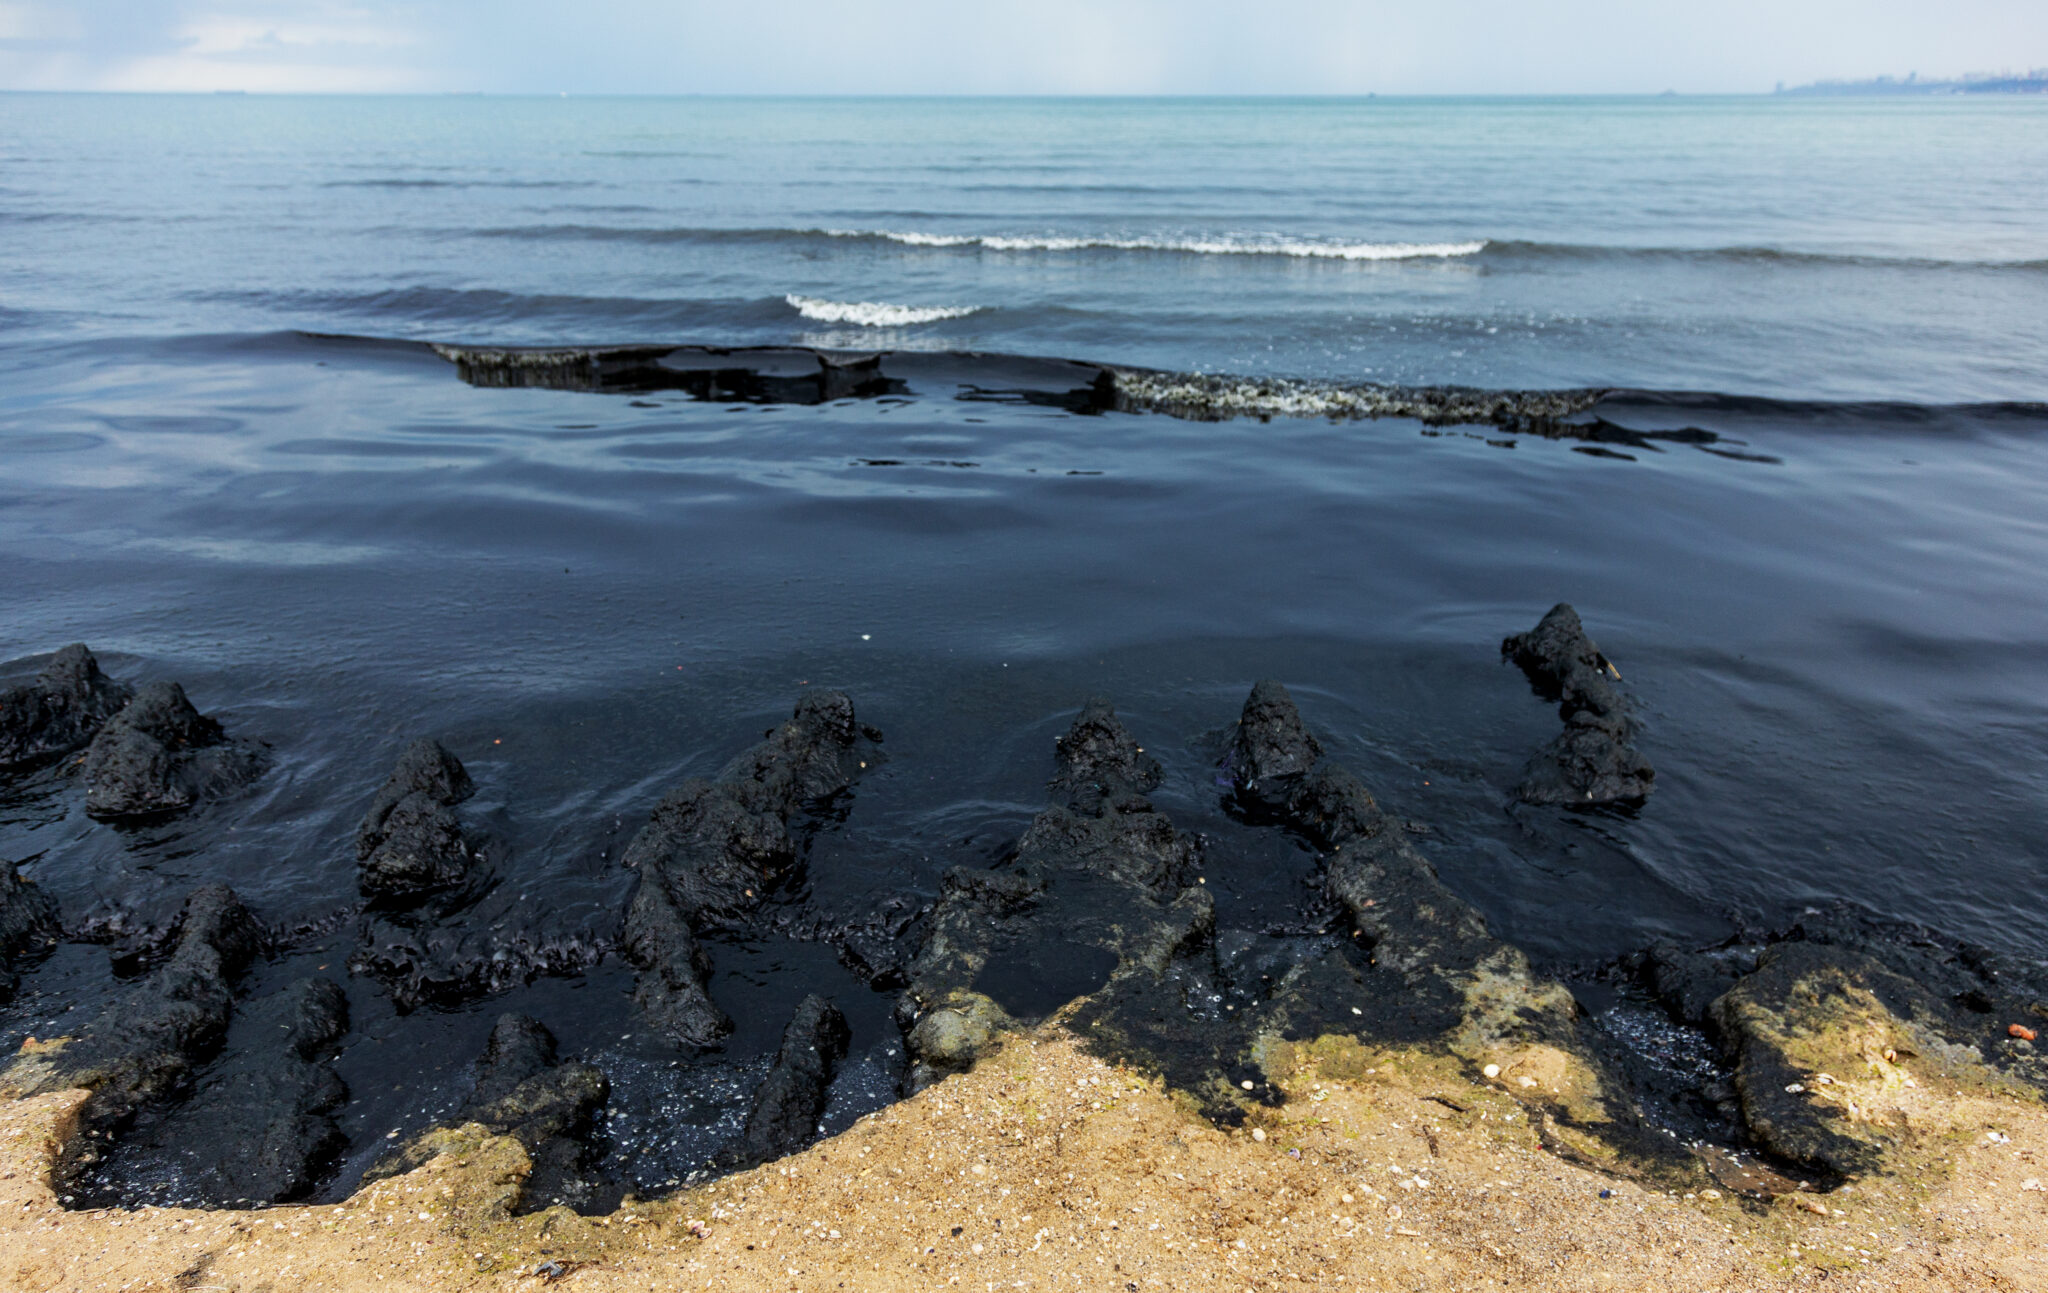 the sea and sand polluted with crude oil